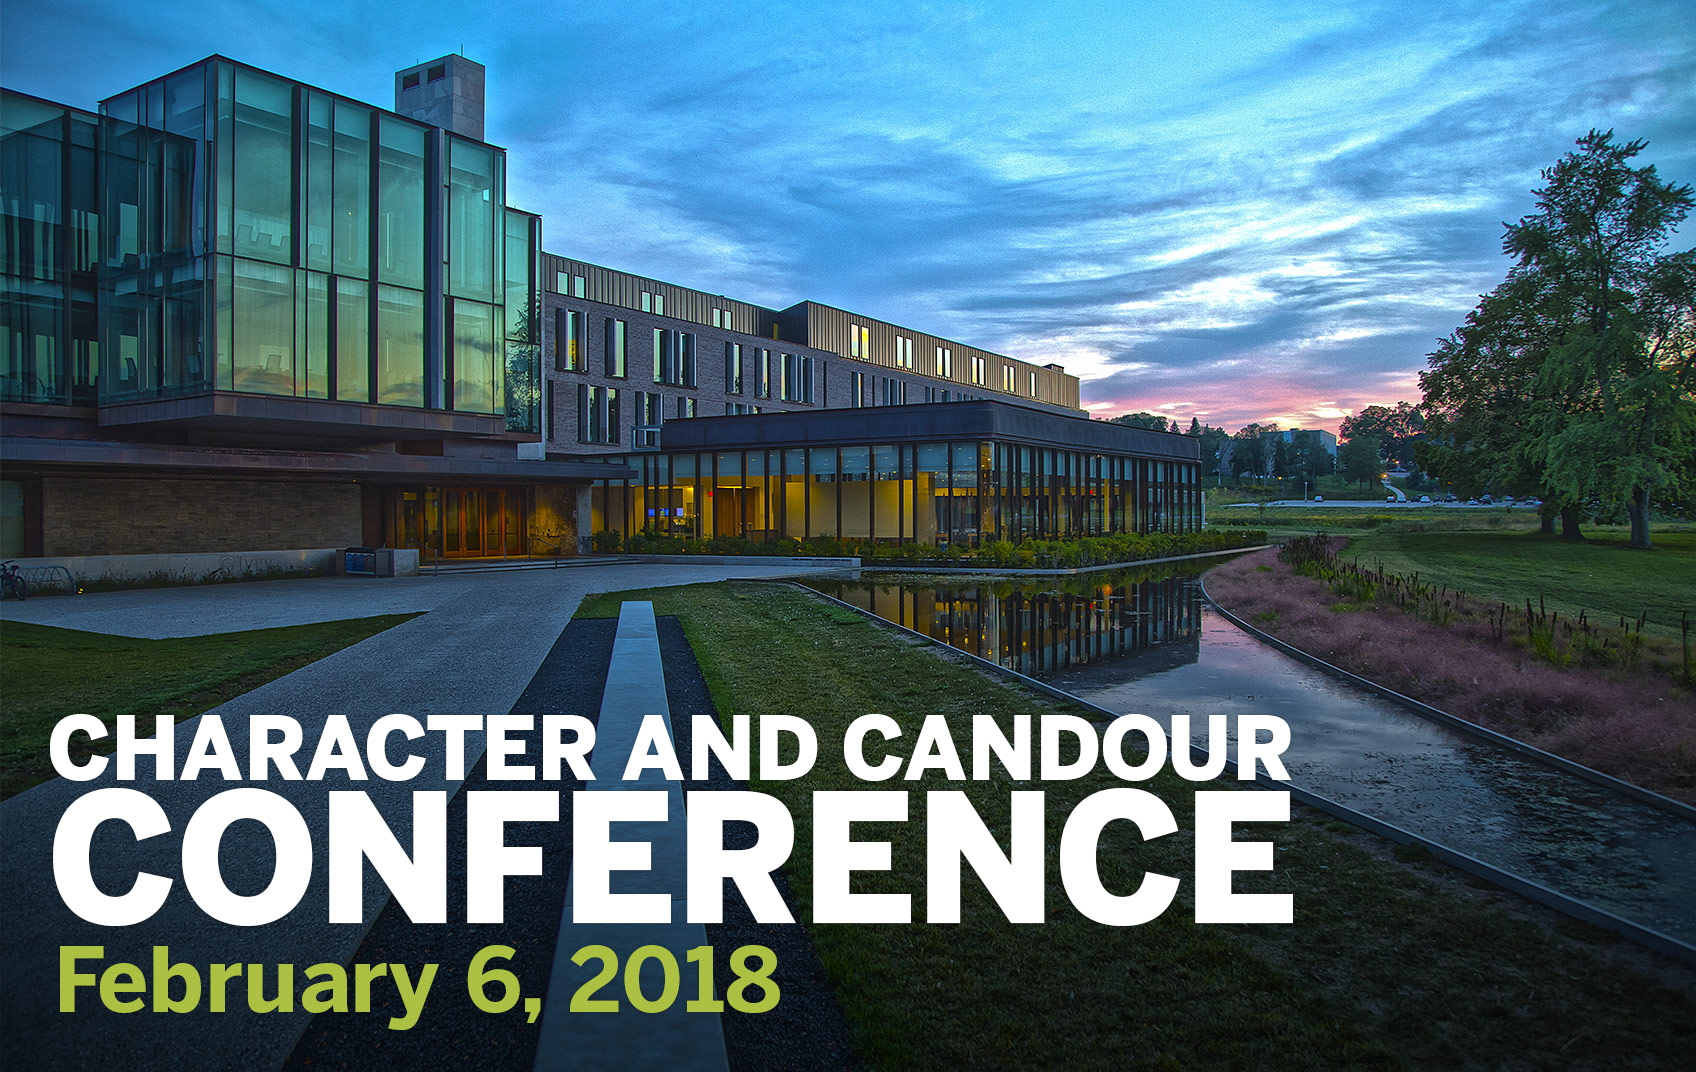 Character and Candour Conference